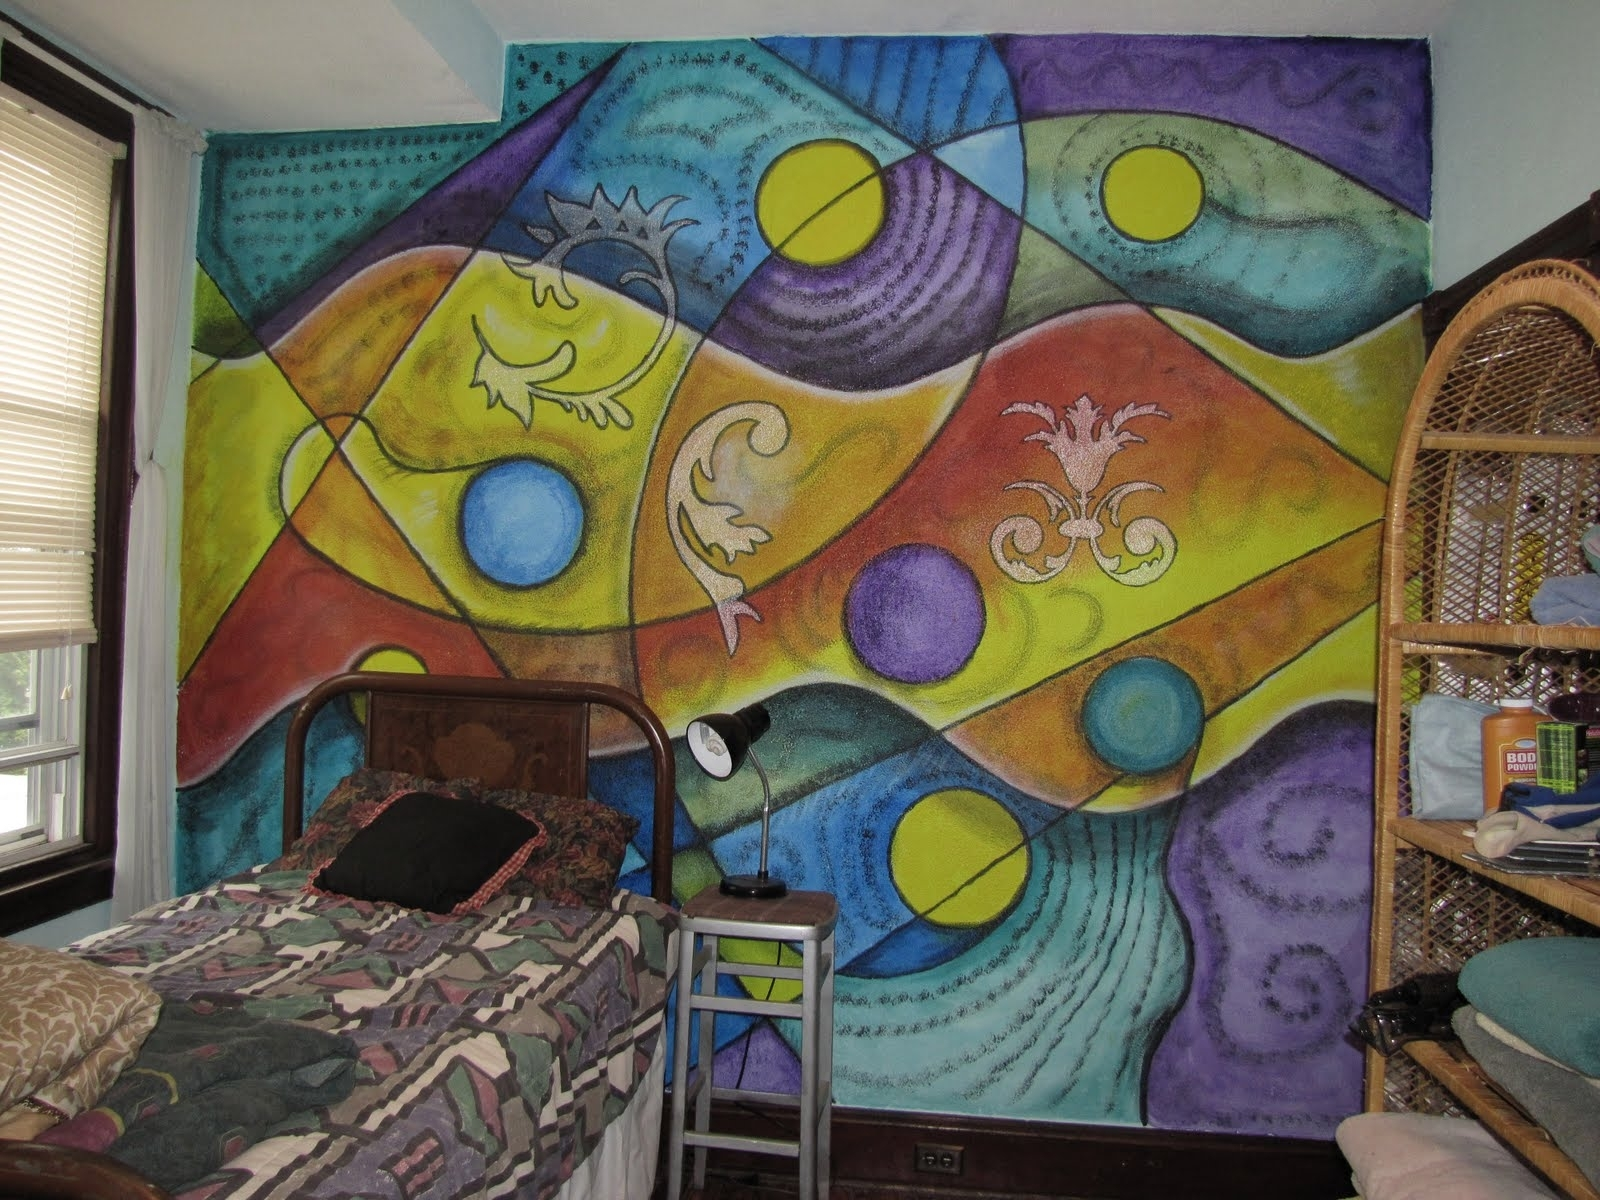 Painting A Colorful Abstract Mural | Mssurreal Intended For Current Abstract Art Wall Murals (View 17 of 20)